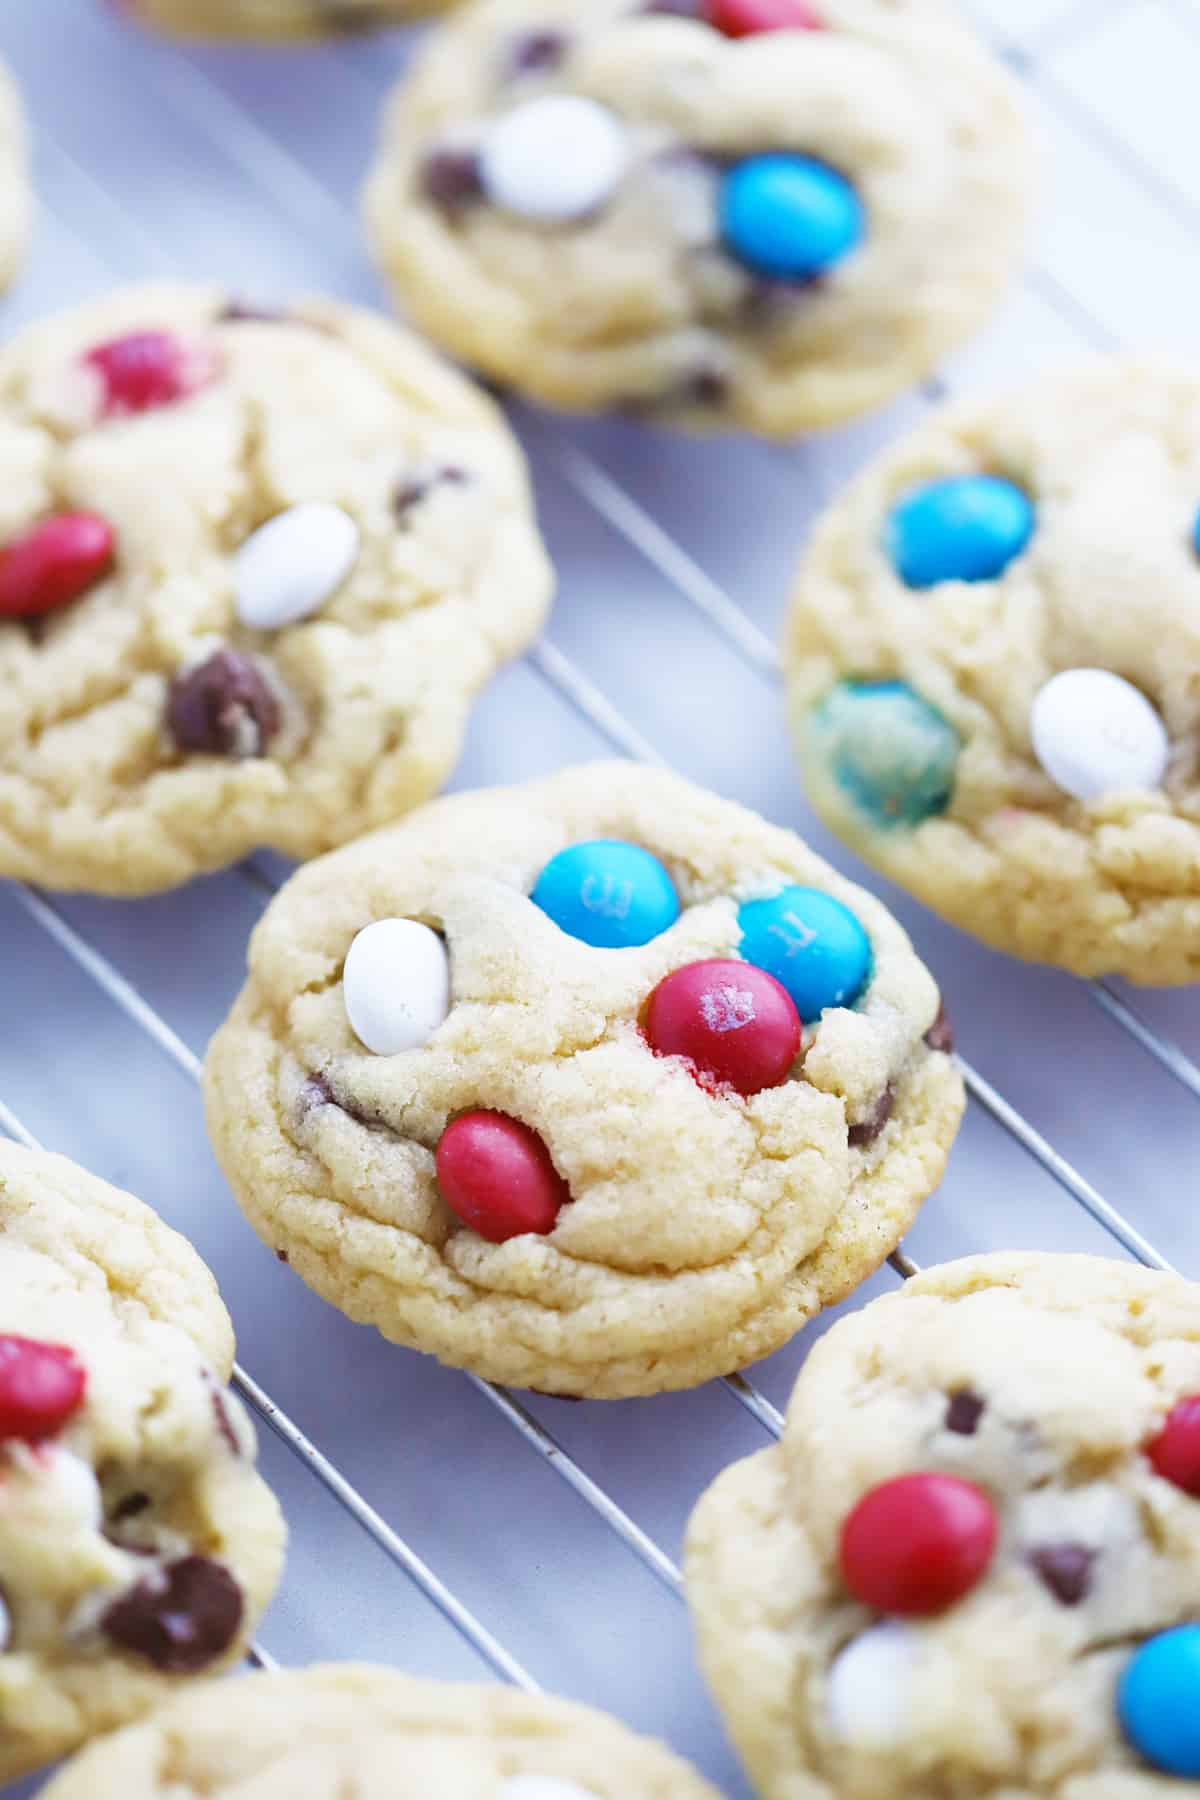 Cookies with red, white and blue M&Ms cooling on a wire rack.